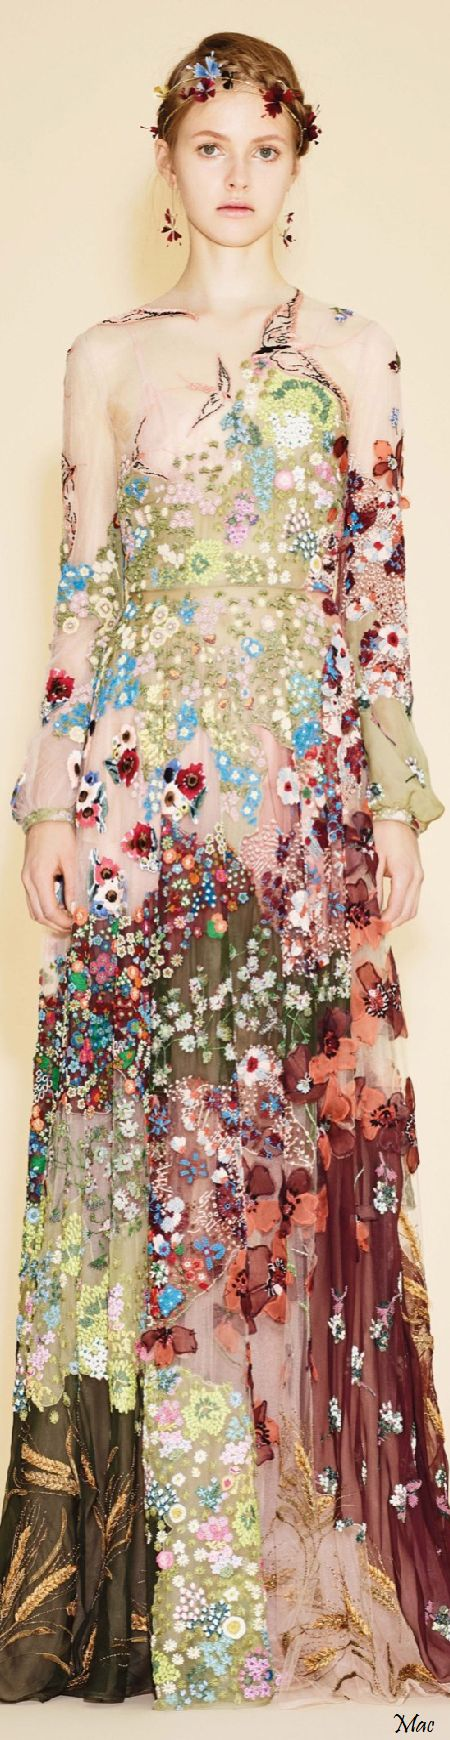 Resort 2016 Valentino looks like the woman in Gustav Klimt's The Kiss